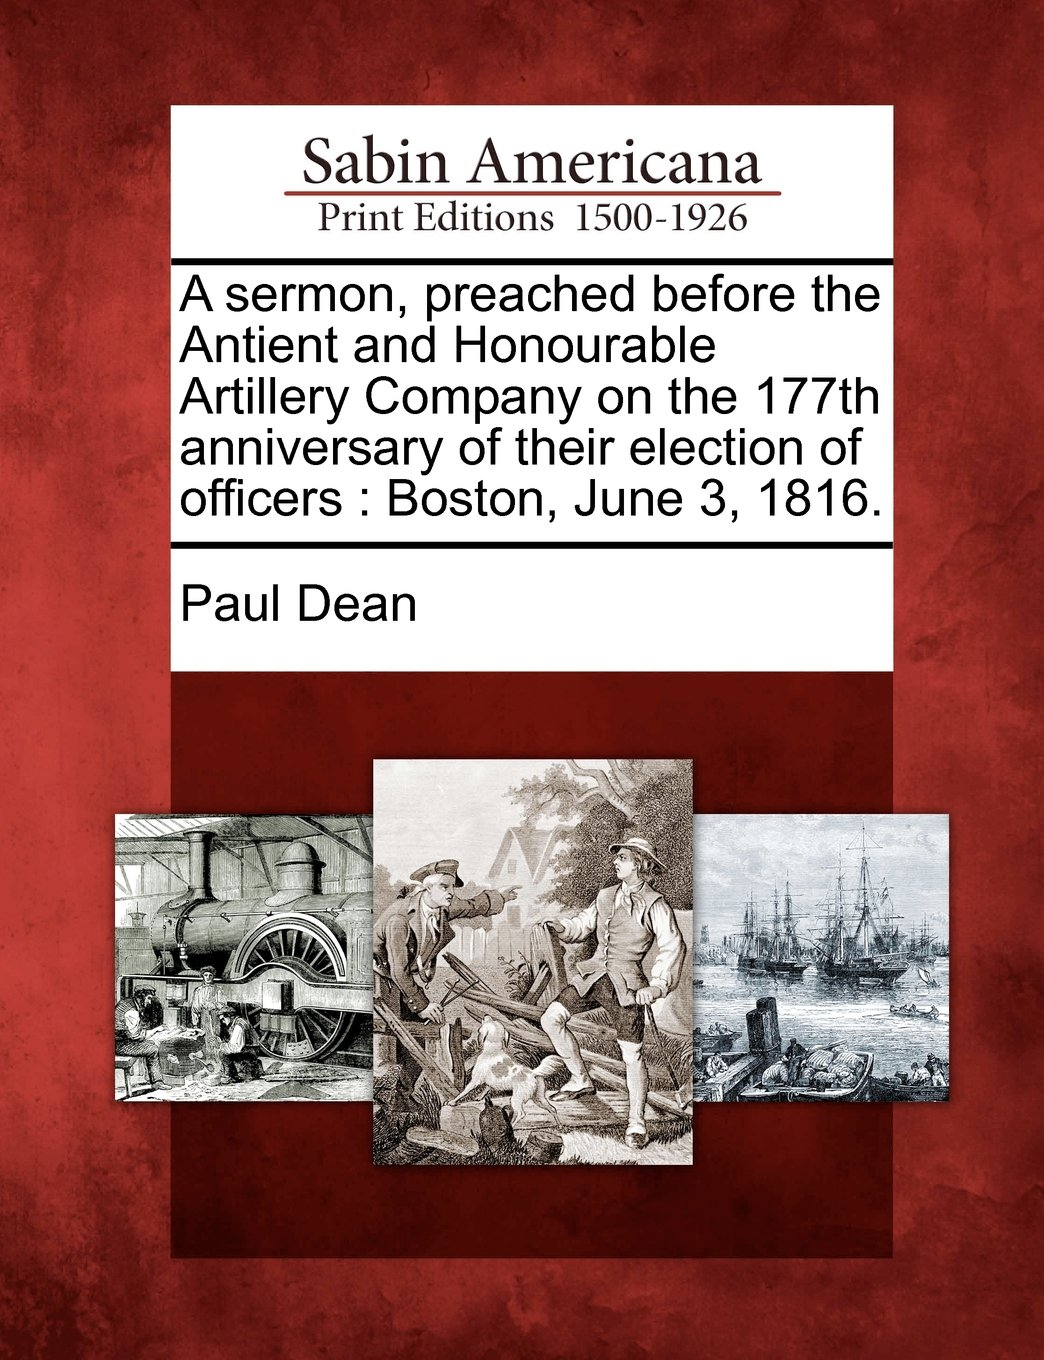 Download A sermon, preached before the Antient and Honourable Artillery Company on the 177th anniversary of their election of officers: Boston, June 3, 1816. PDF